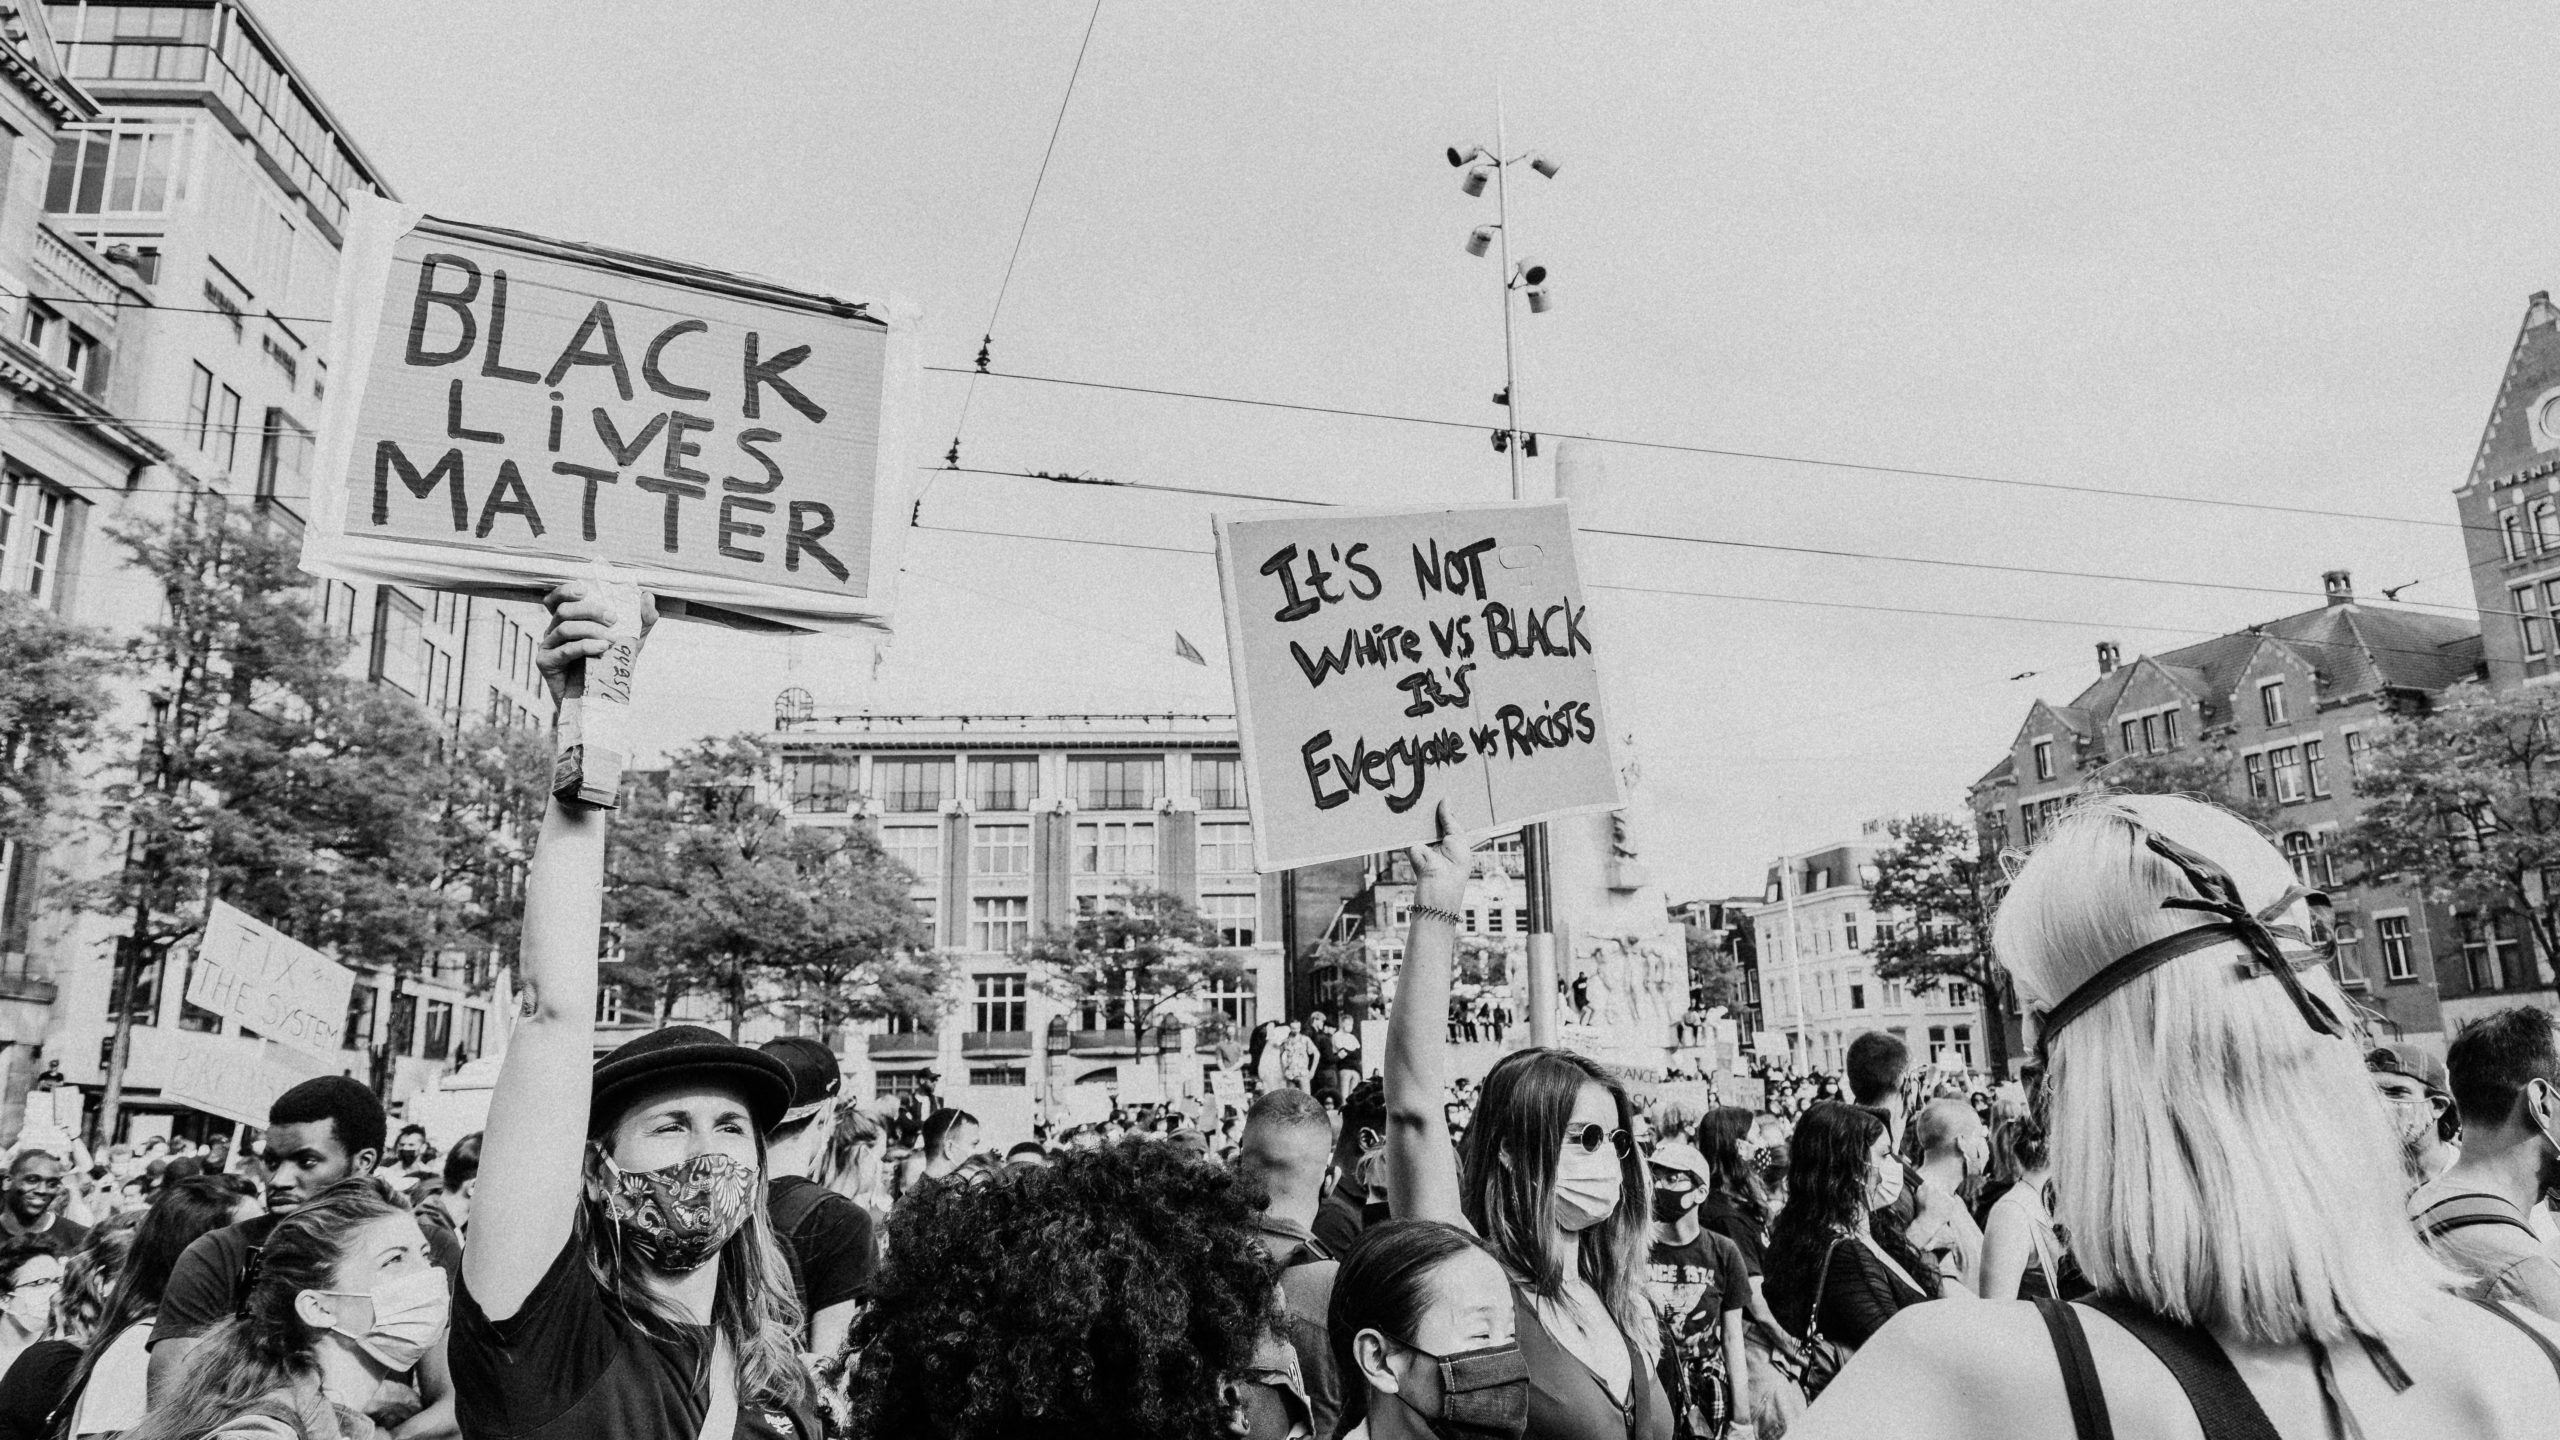 Everything We Know About the Shooting That's Reignited Black Lives Matter Protests